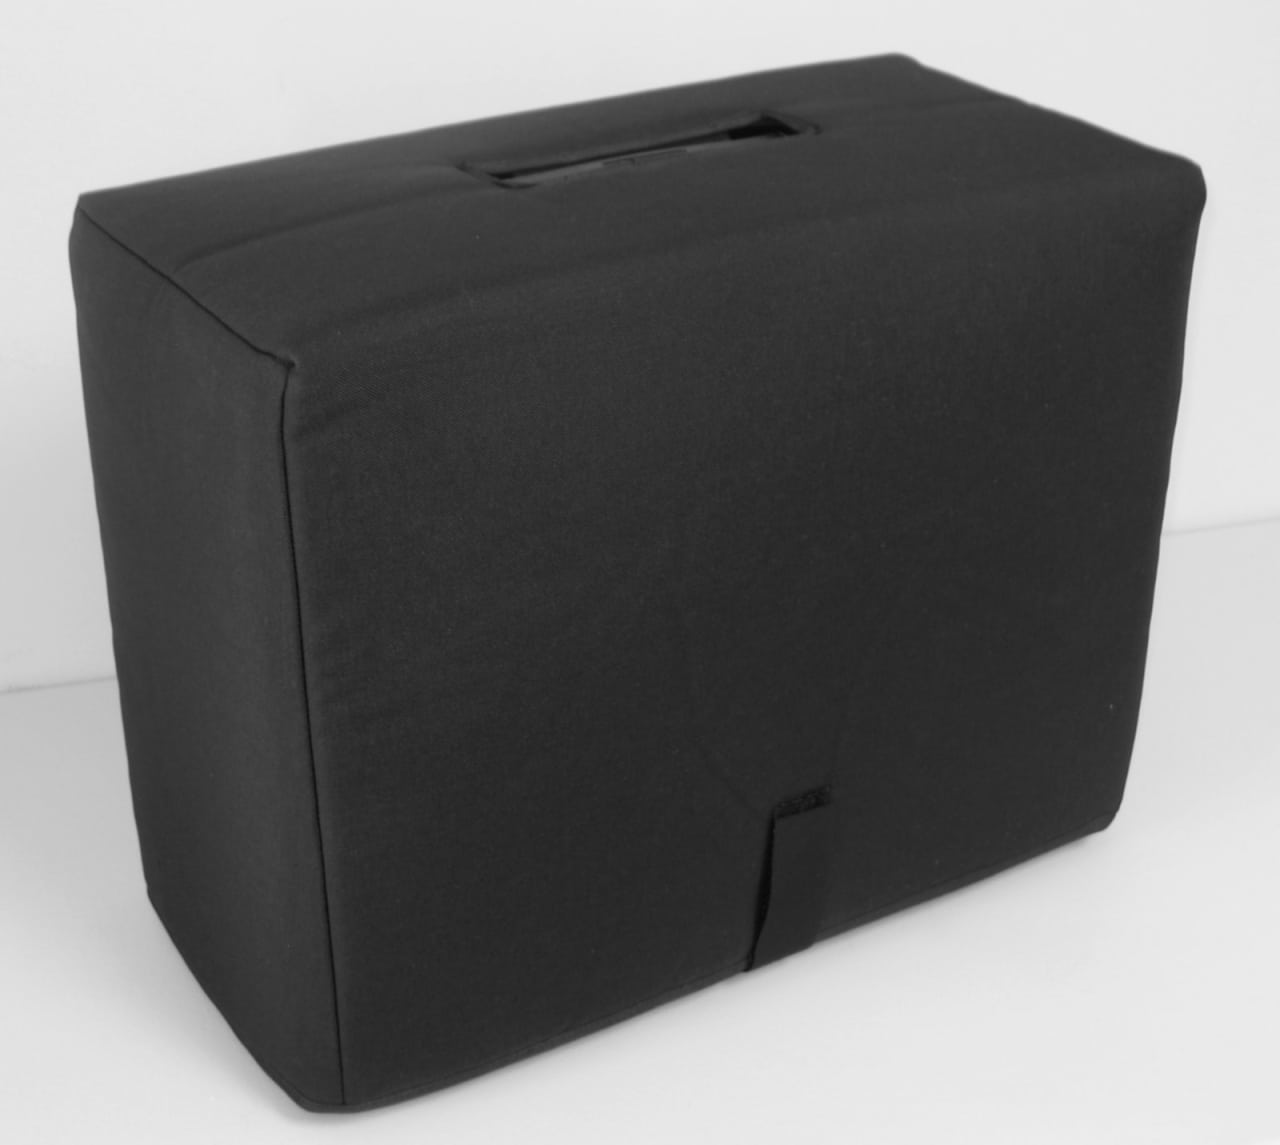 Tuki Padded Cover For Peavey Classic 410e 4x10 Speaker